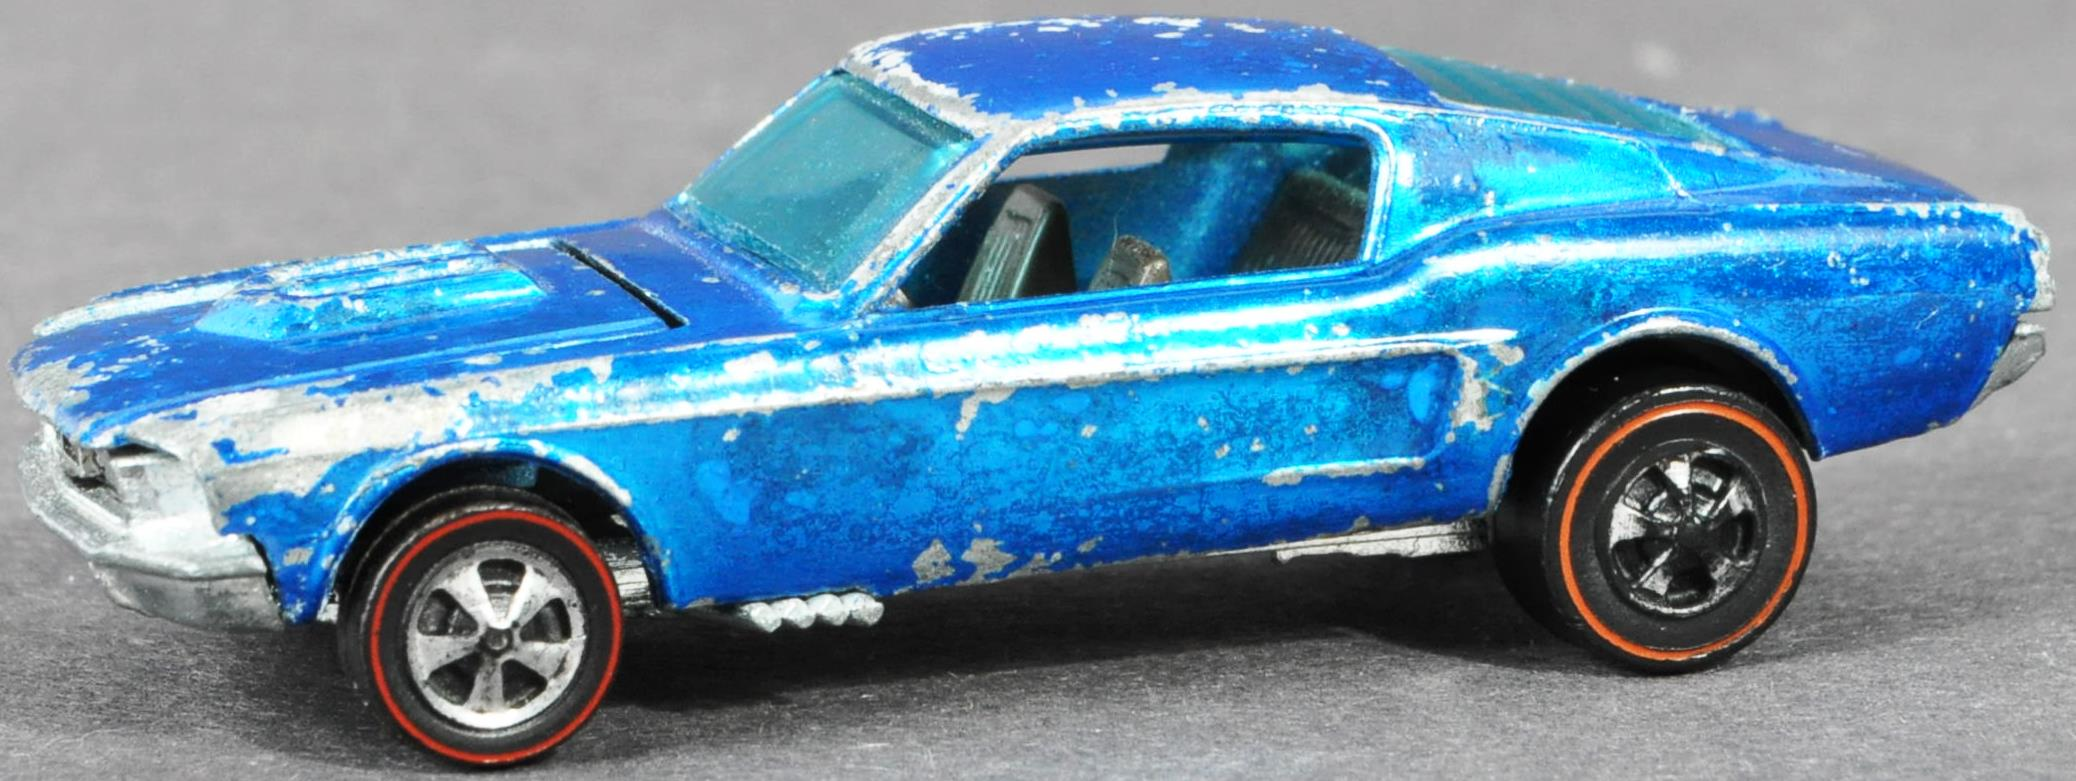 RARE HOT WHEELS CUSTOM MUSTANG WITH LOUVERED WINDOW